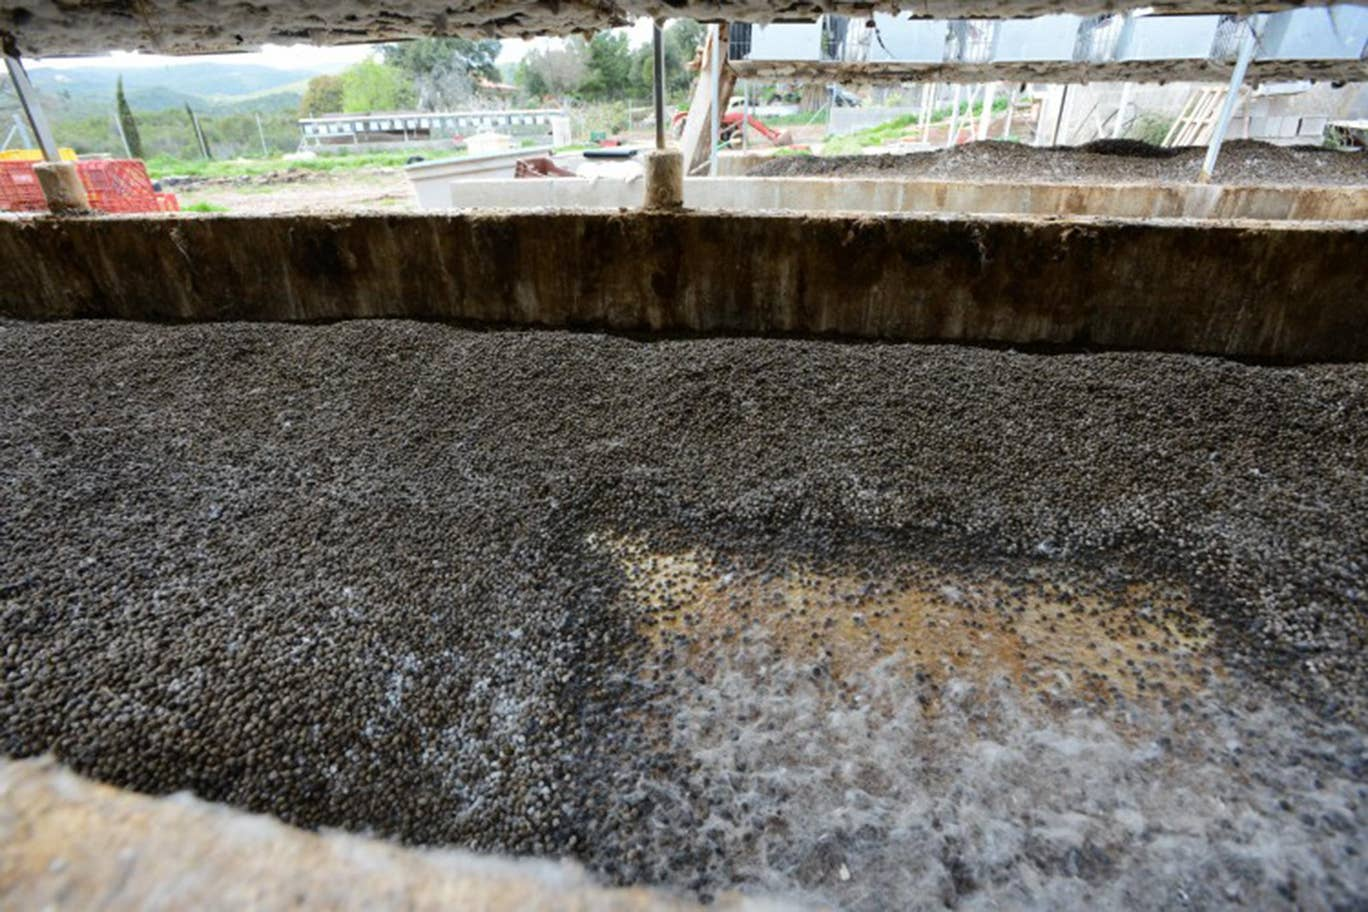 Excrement below rabbit cages on industrial farm